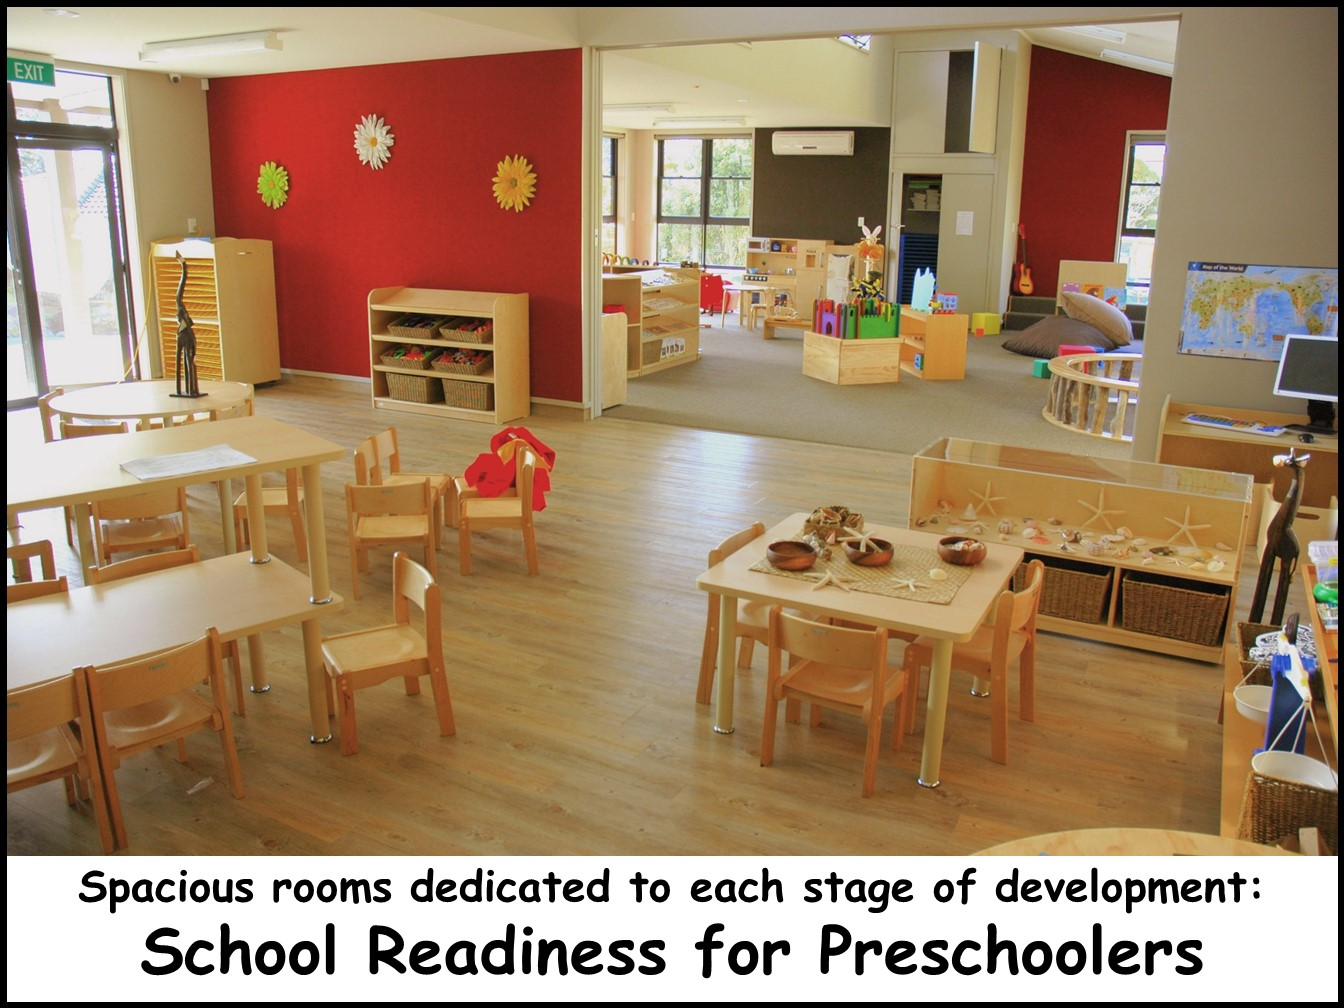 Recommended kindergarten in Avondale that is all about children & seeing kids discoveries achieve the best start near Laingholm, Huia, Massey, Westgate, Glendene, Glen Eden, Huapai, New Lynn, Swanson, Kelston, Titirangi, Kumeu, Waterview, Henderson, Hobsonville, Whenuapai, Te Atatu, Waimauku